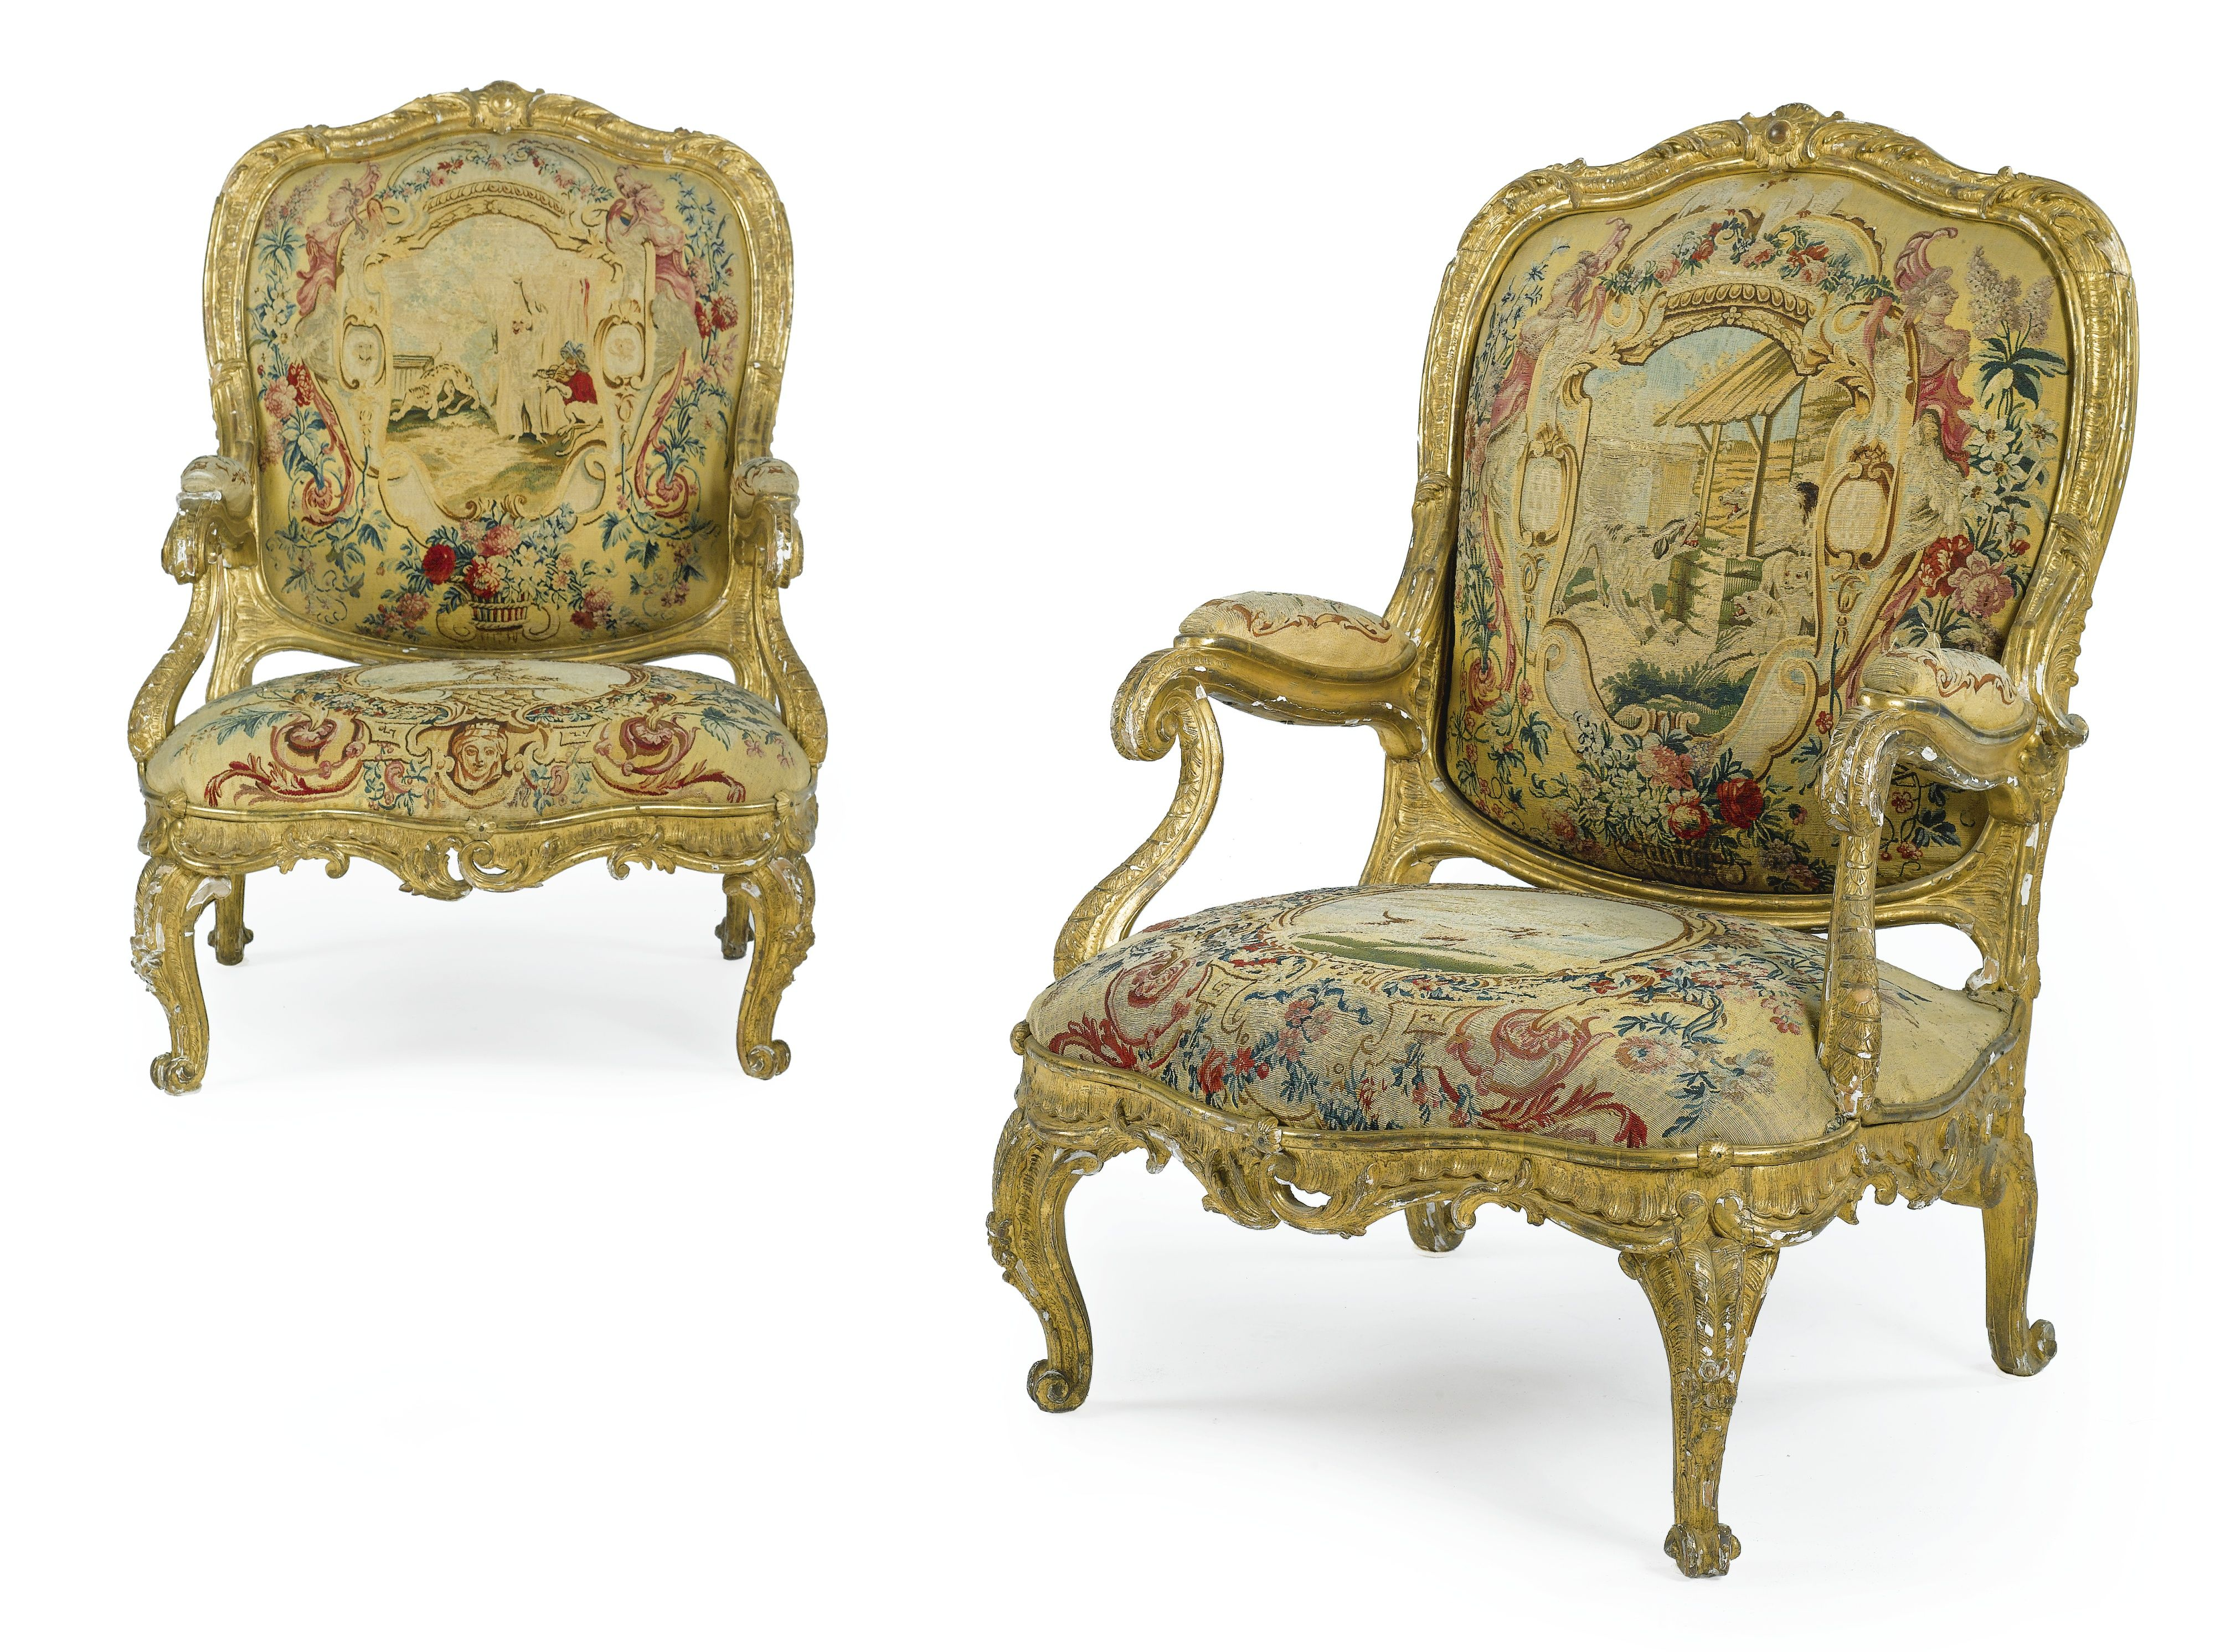 A pair of German Rococo carved giltwood armchairs upholstered